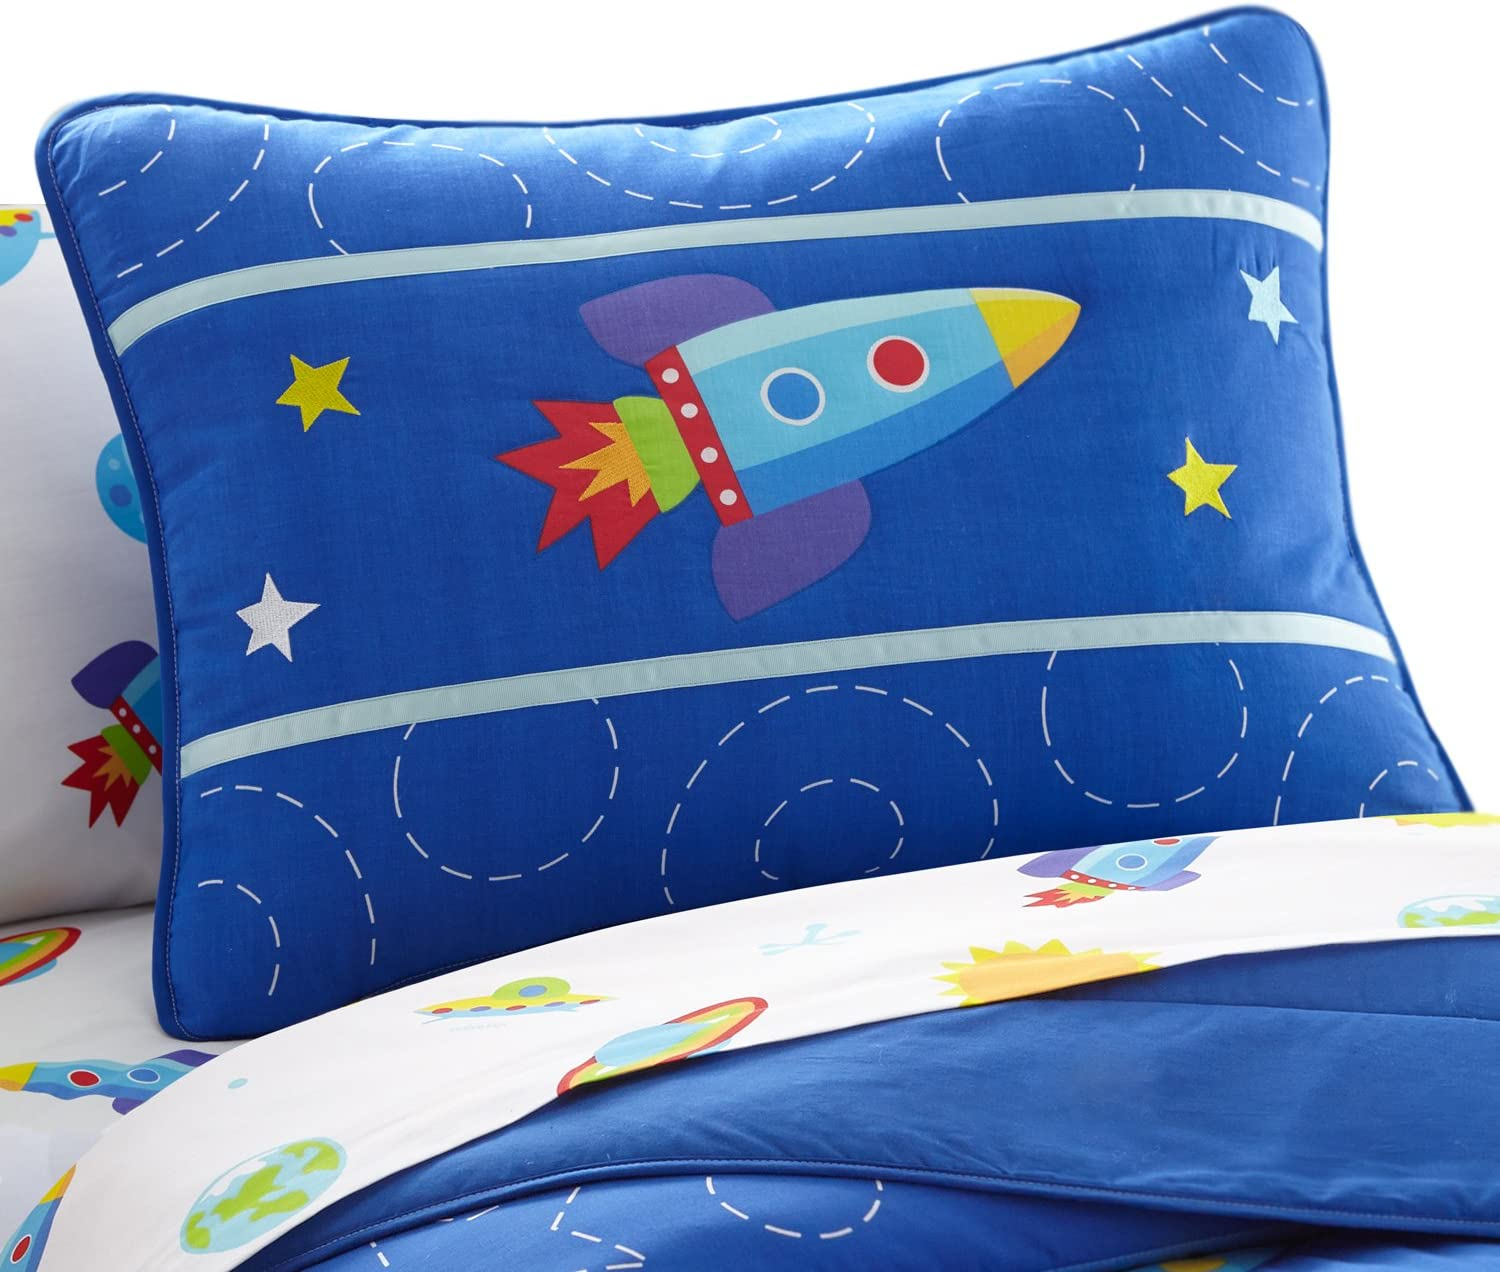 Wildkin Kids 100% Cotton Pillow Sham for Boys and Girls, Breathable Fabric, Envelope Closure, Measures 20 x 26 Inches, Fits a Standard Pillow, Pattern Coordinates with Our Sheet Sets and Comforters